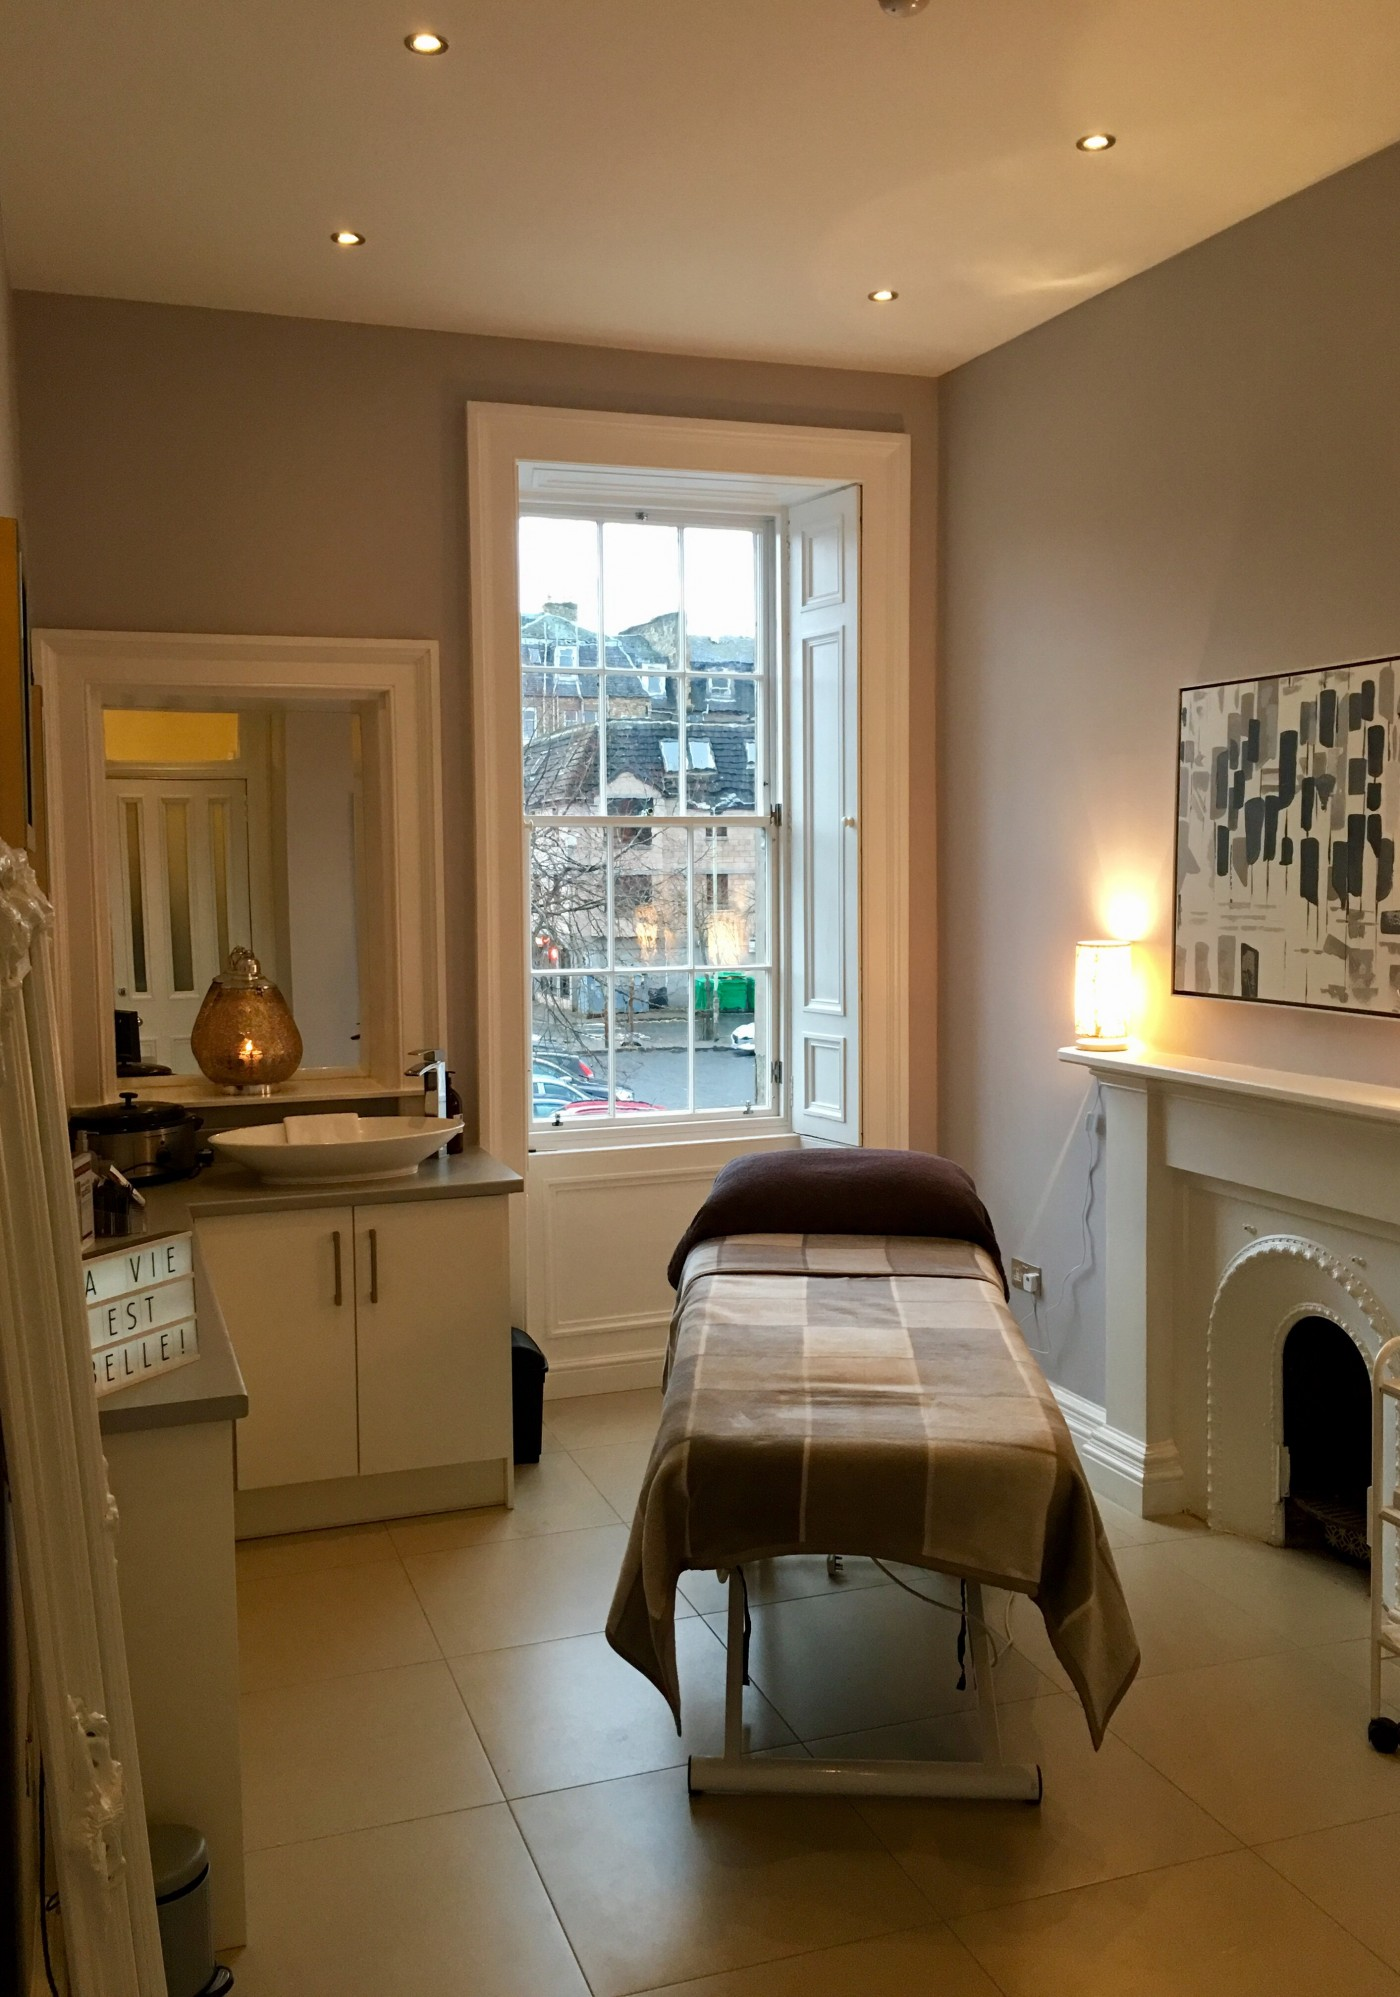 New Beauty Room - Full Picture